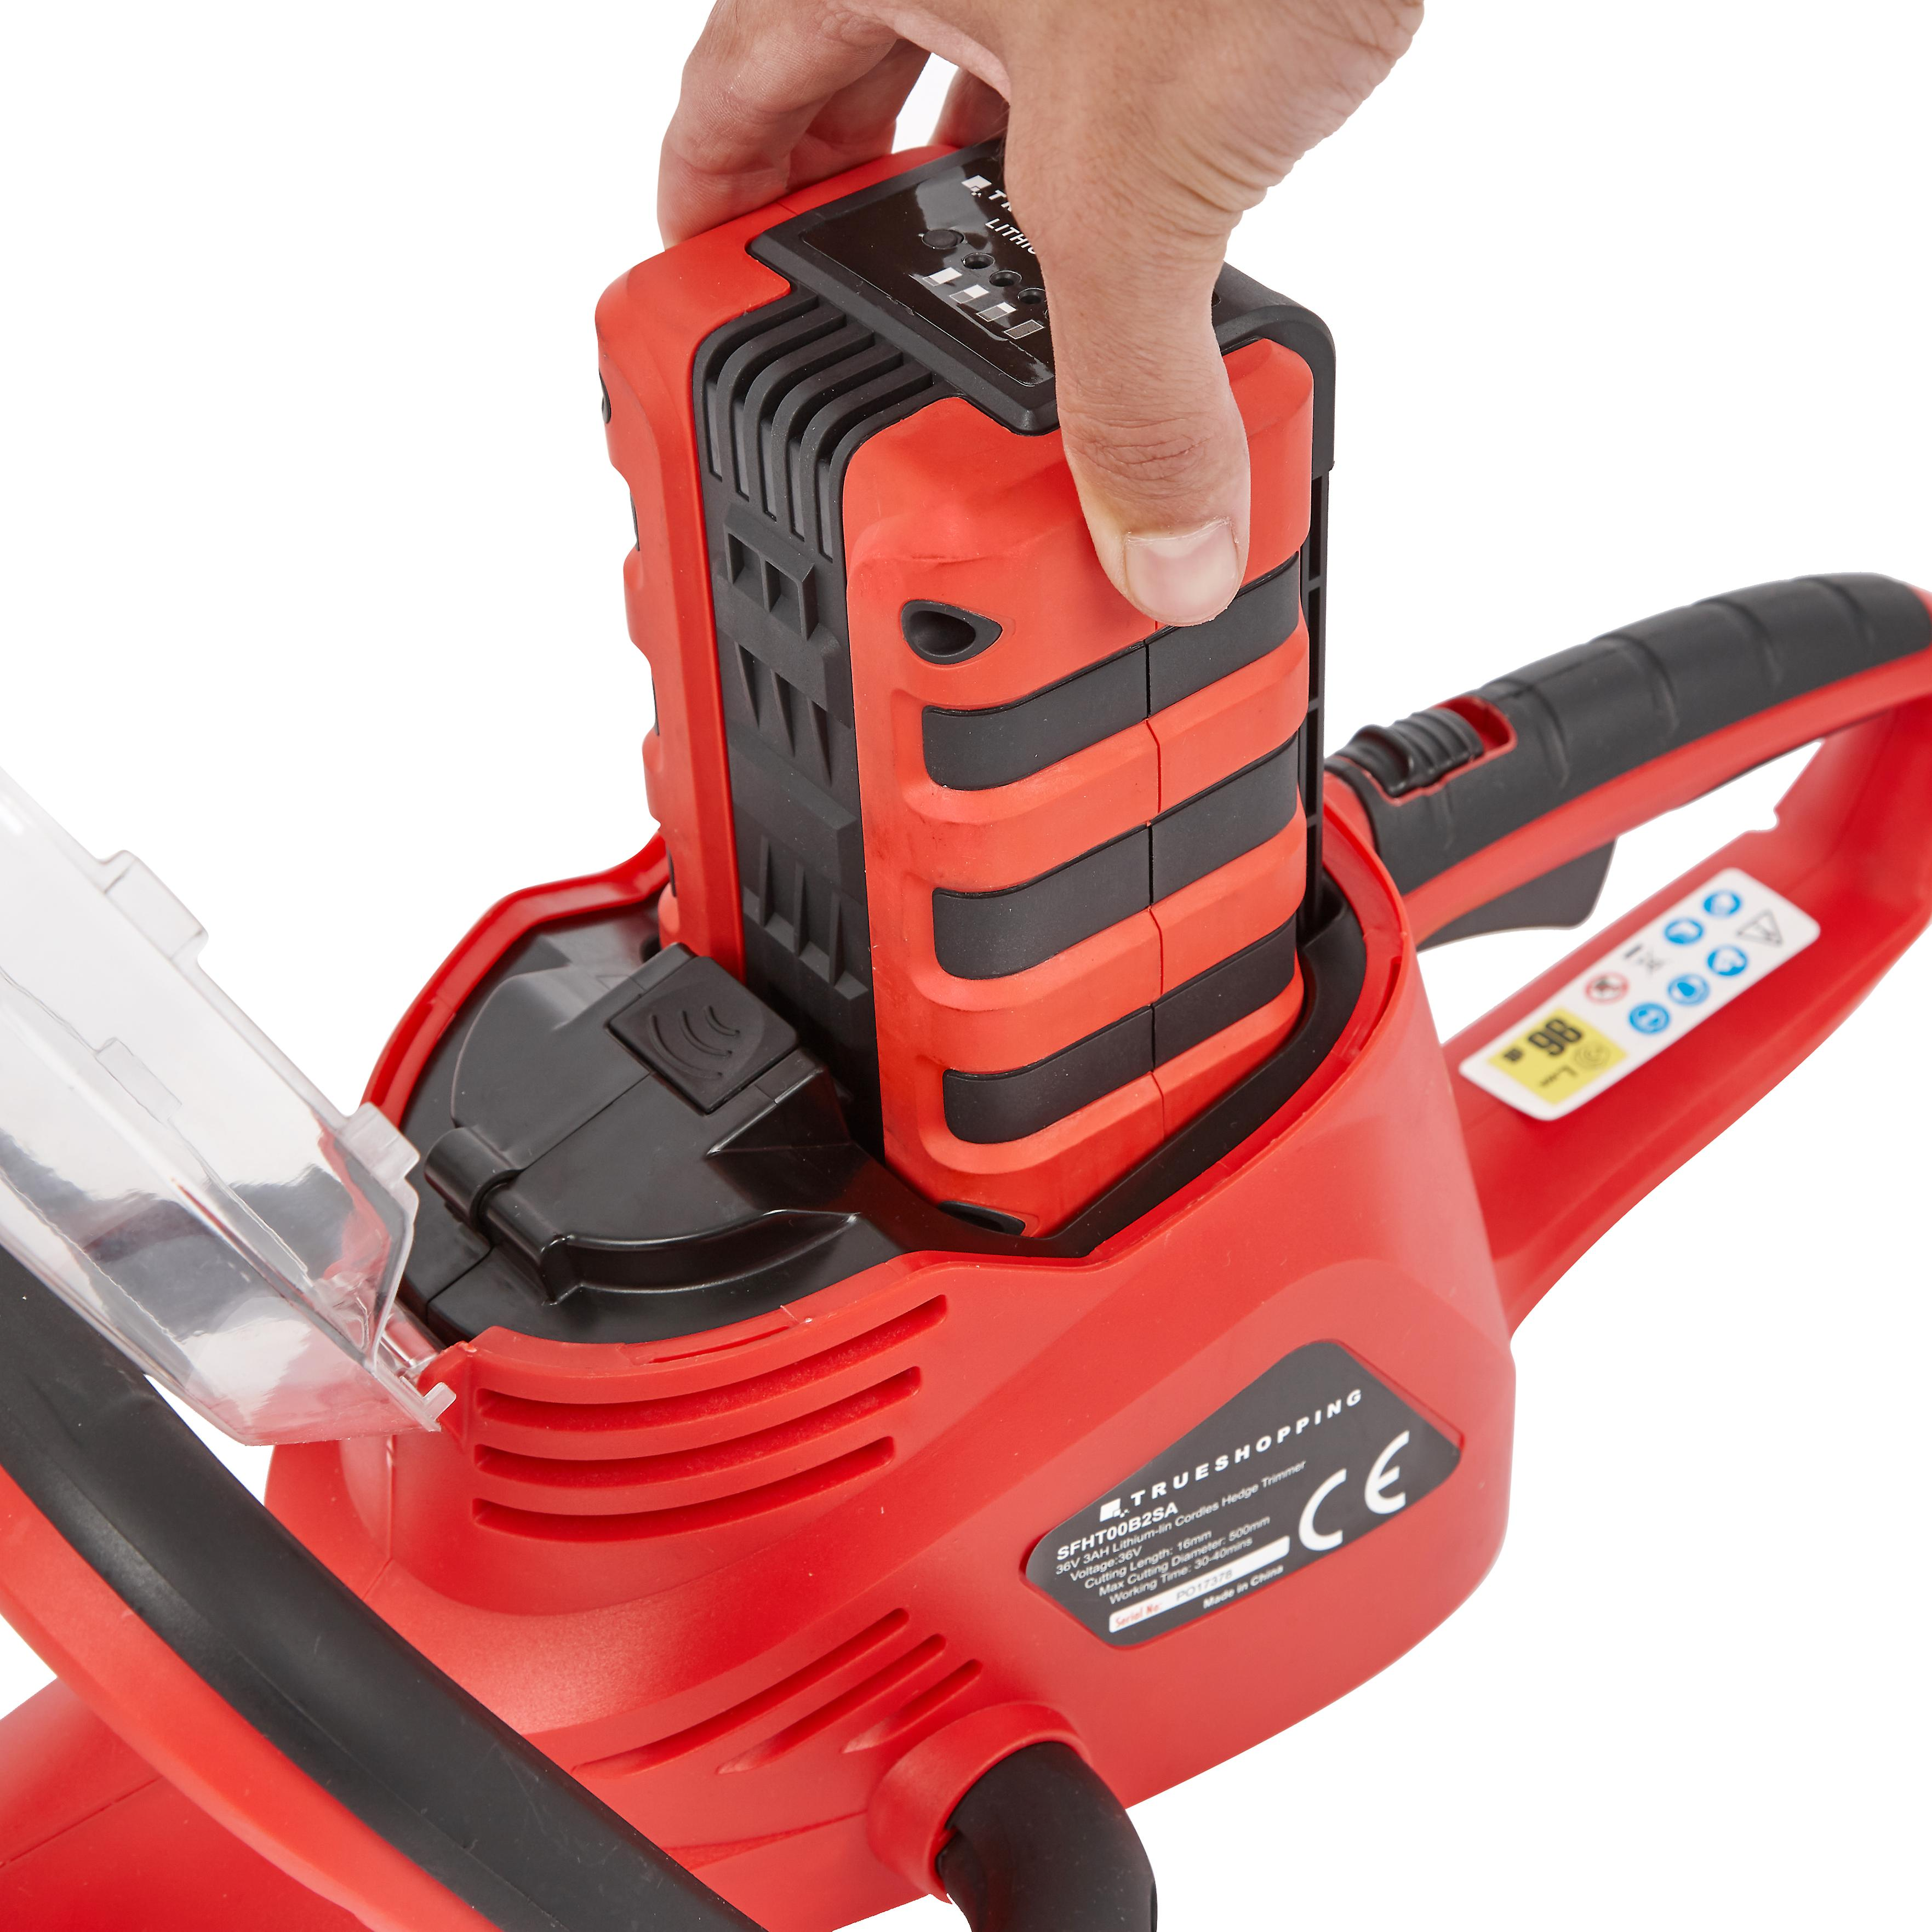 Lightweight Cordless 36V Hedge Trimmer/Cutter Li-Ion Battery and Fast Charger